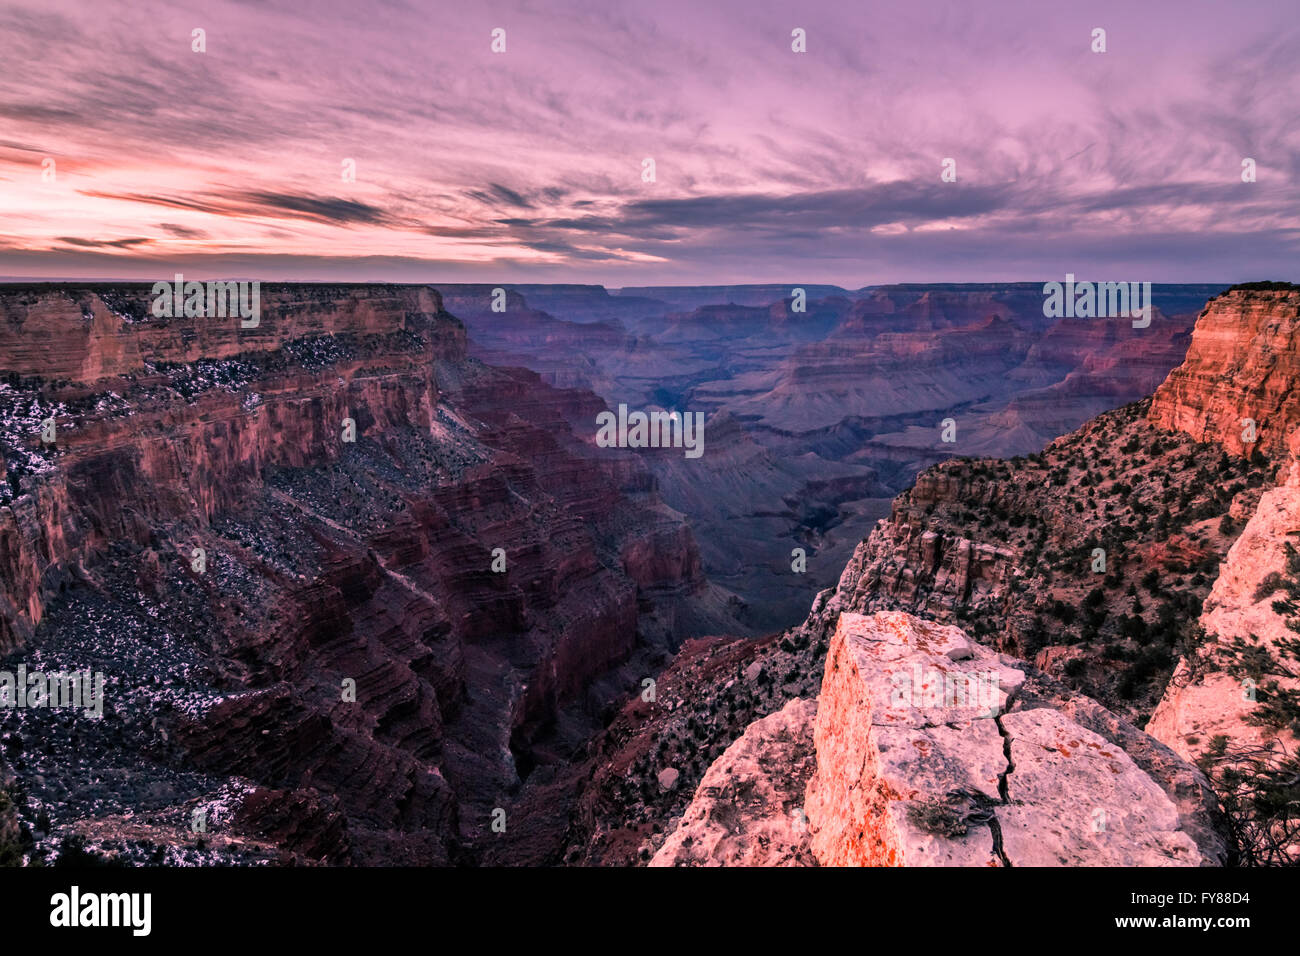 Les rochers du Grand Canyon reflétant la rose de l'Arizona sunset Photo Stock